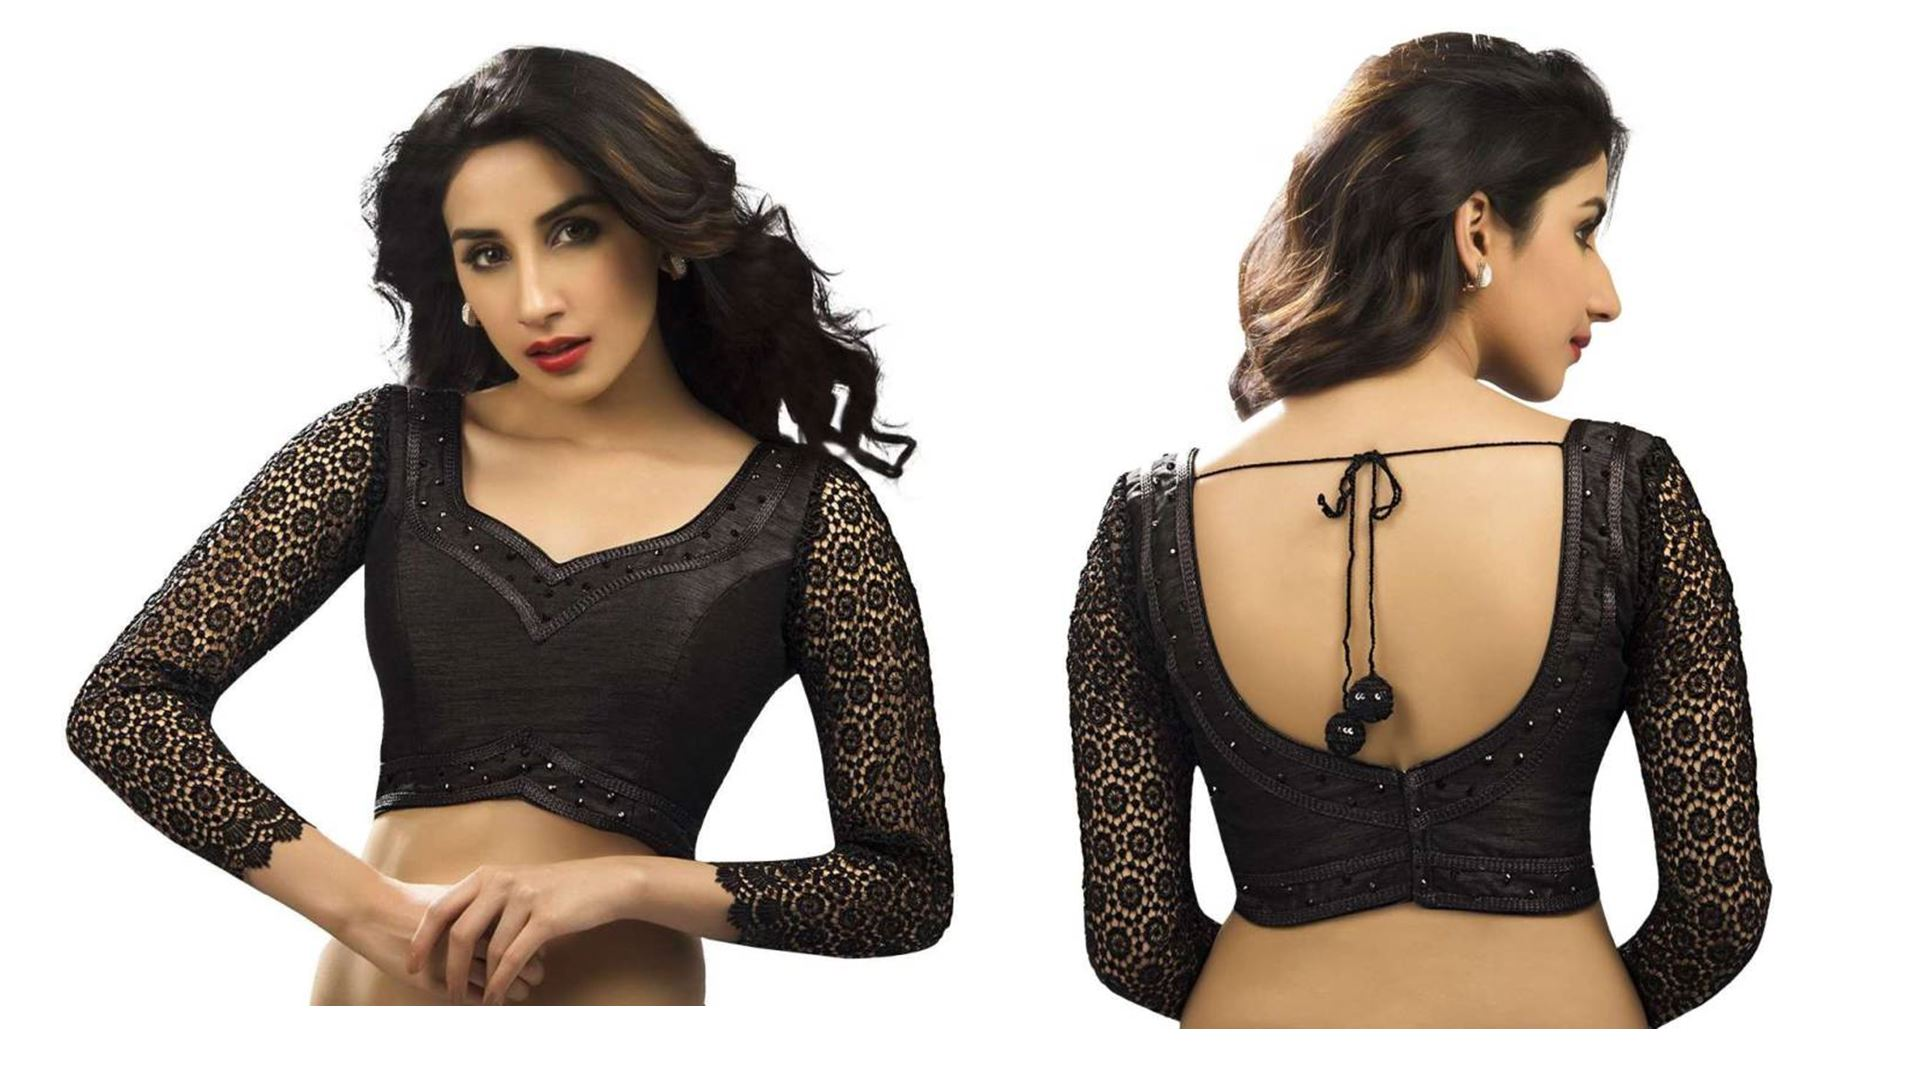 Nauvari Saree Blouse Back Designs 2017 25 Best Blouse Images Blouse Designs Saree Blouse Designs Indian Blouse Blouses Discover The Latest Best Selling Shop Women S Shirts High Quality